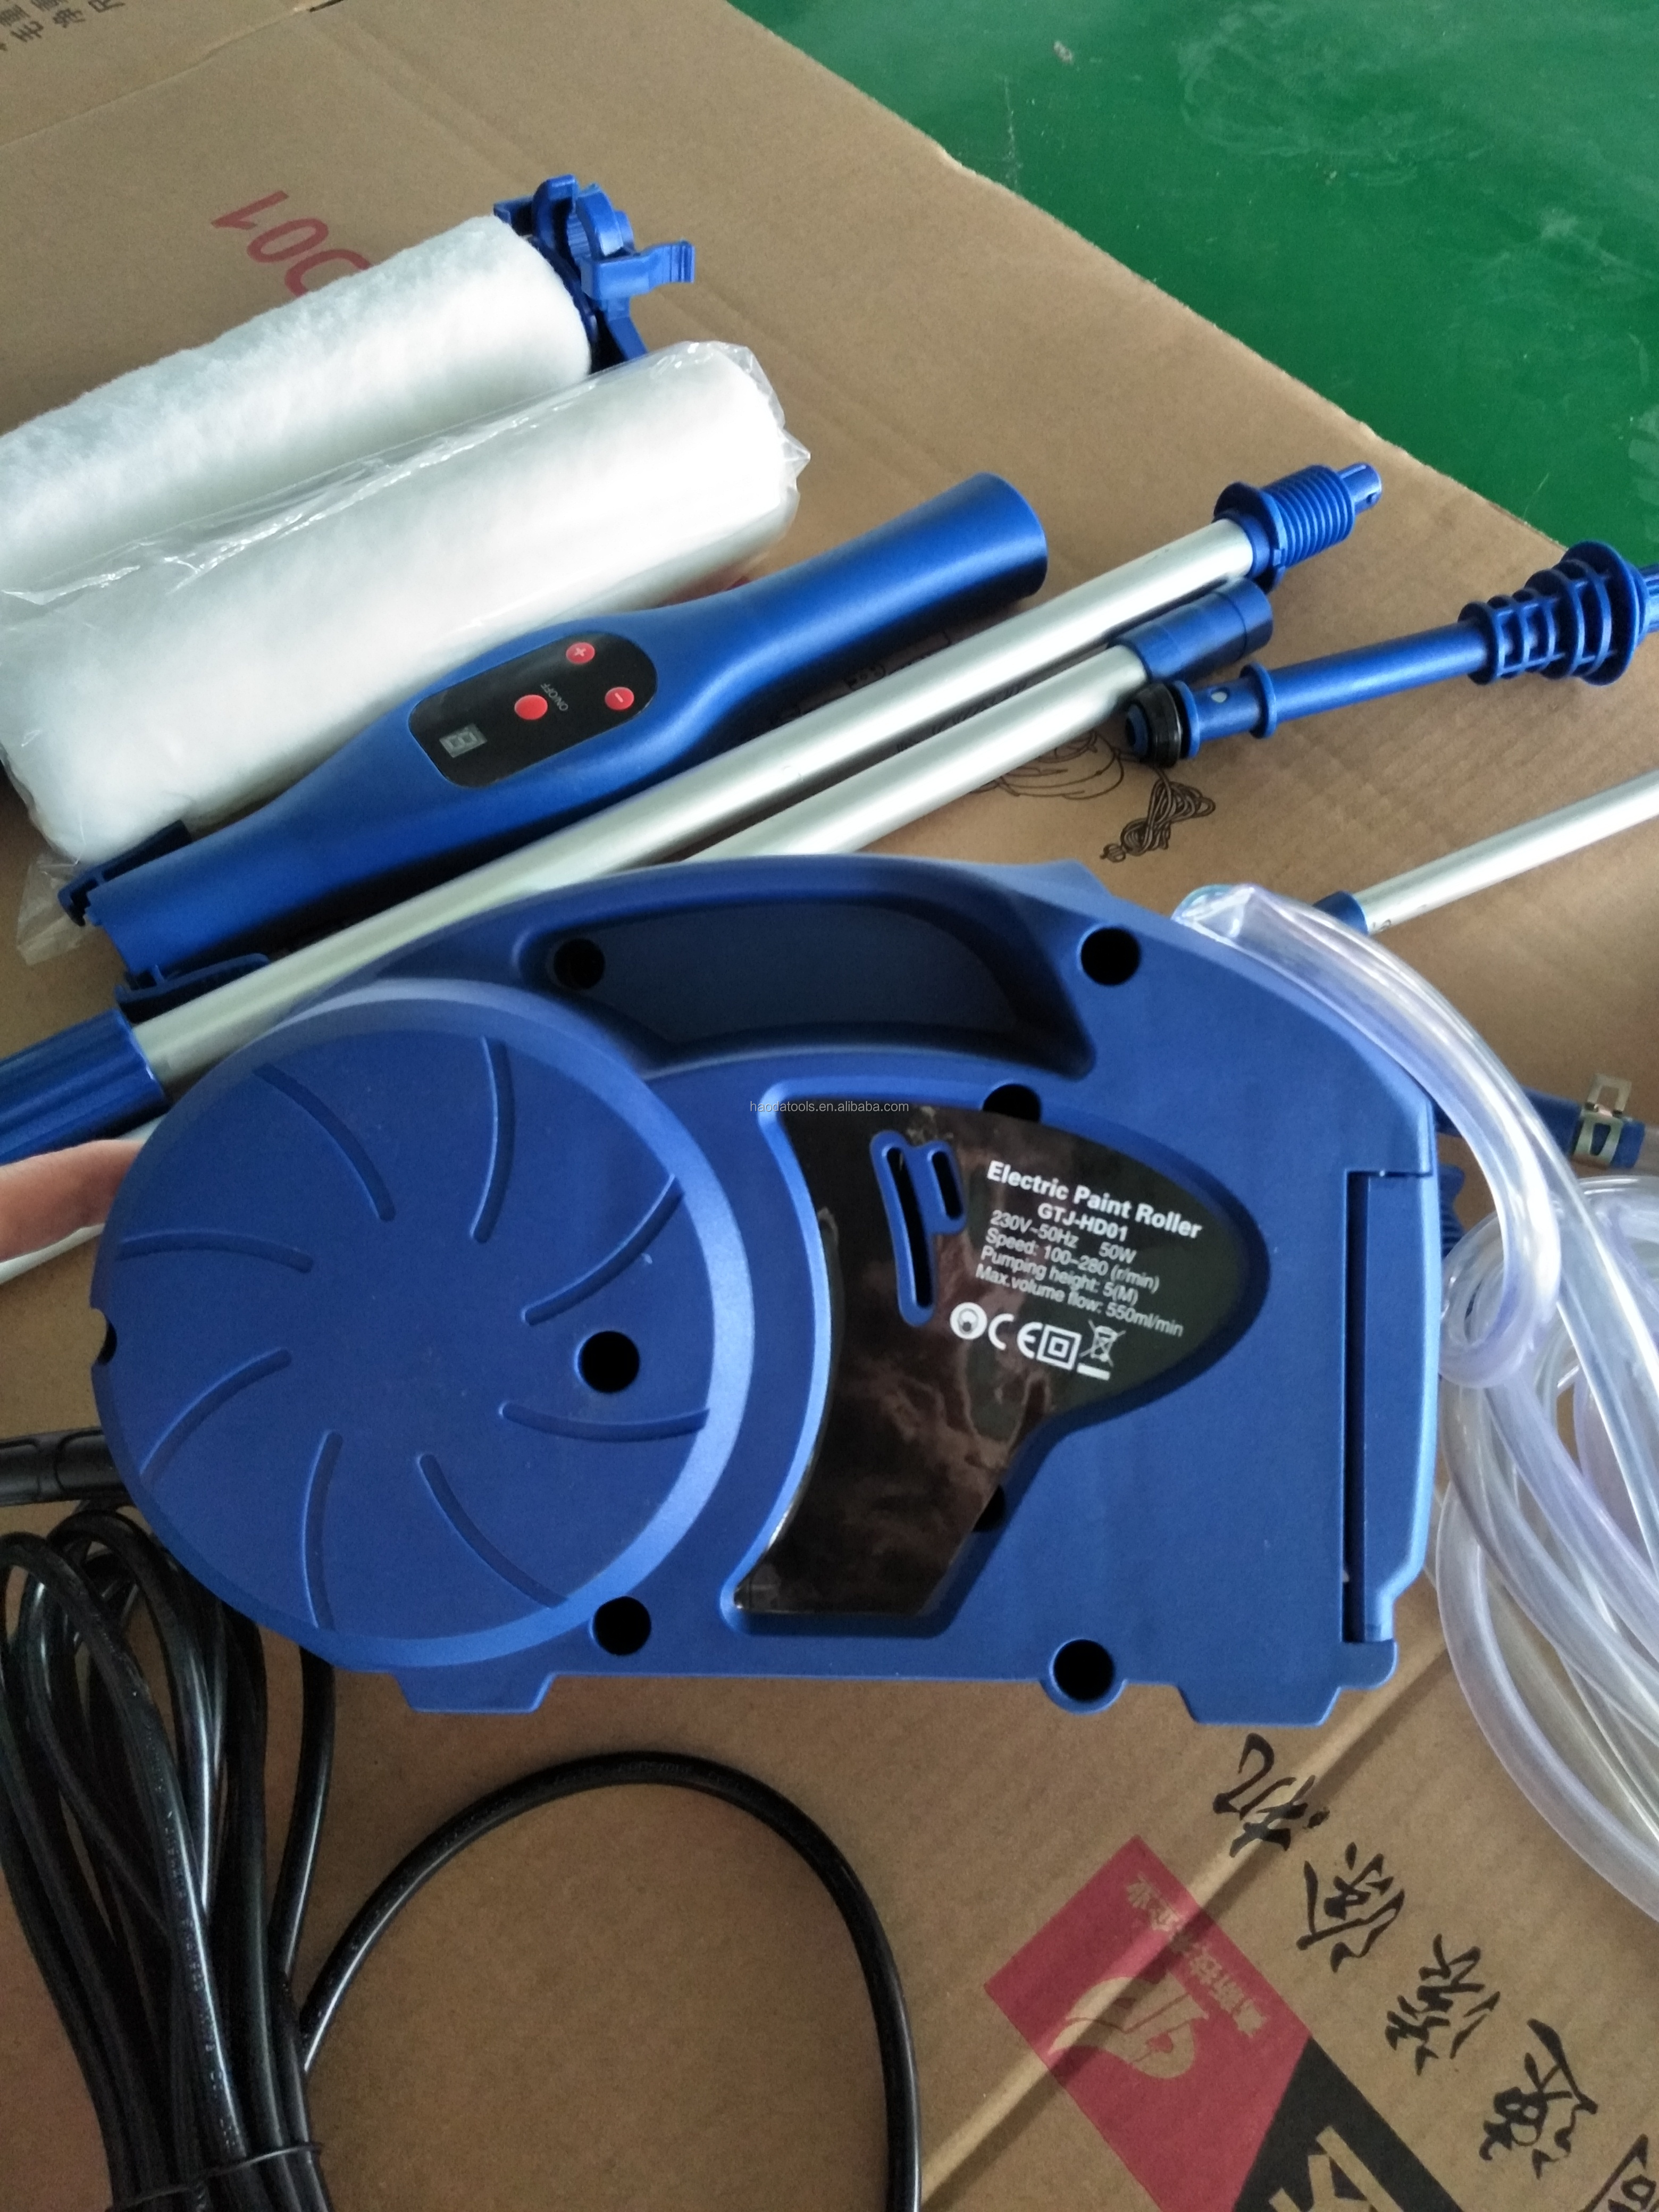 ELECTRIC PAINT ROLLER WITH REMOTE CONTROL